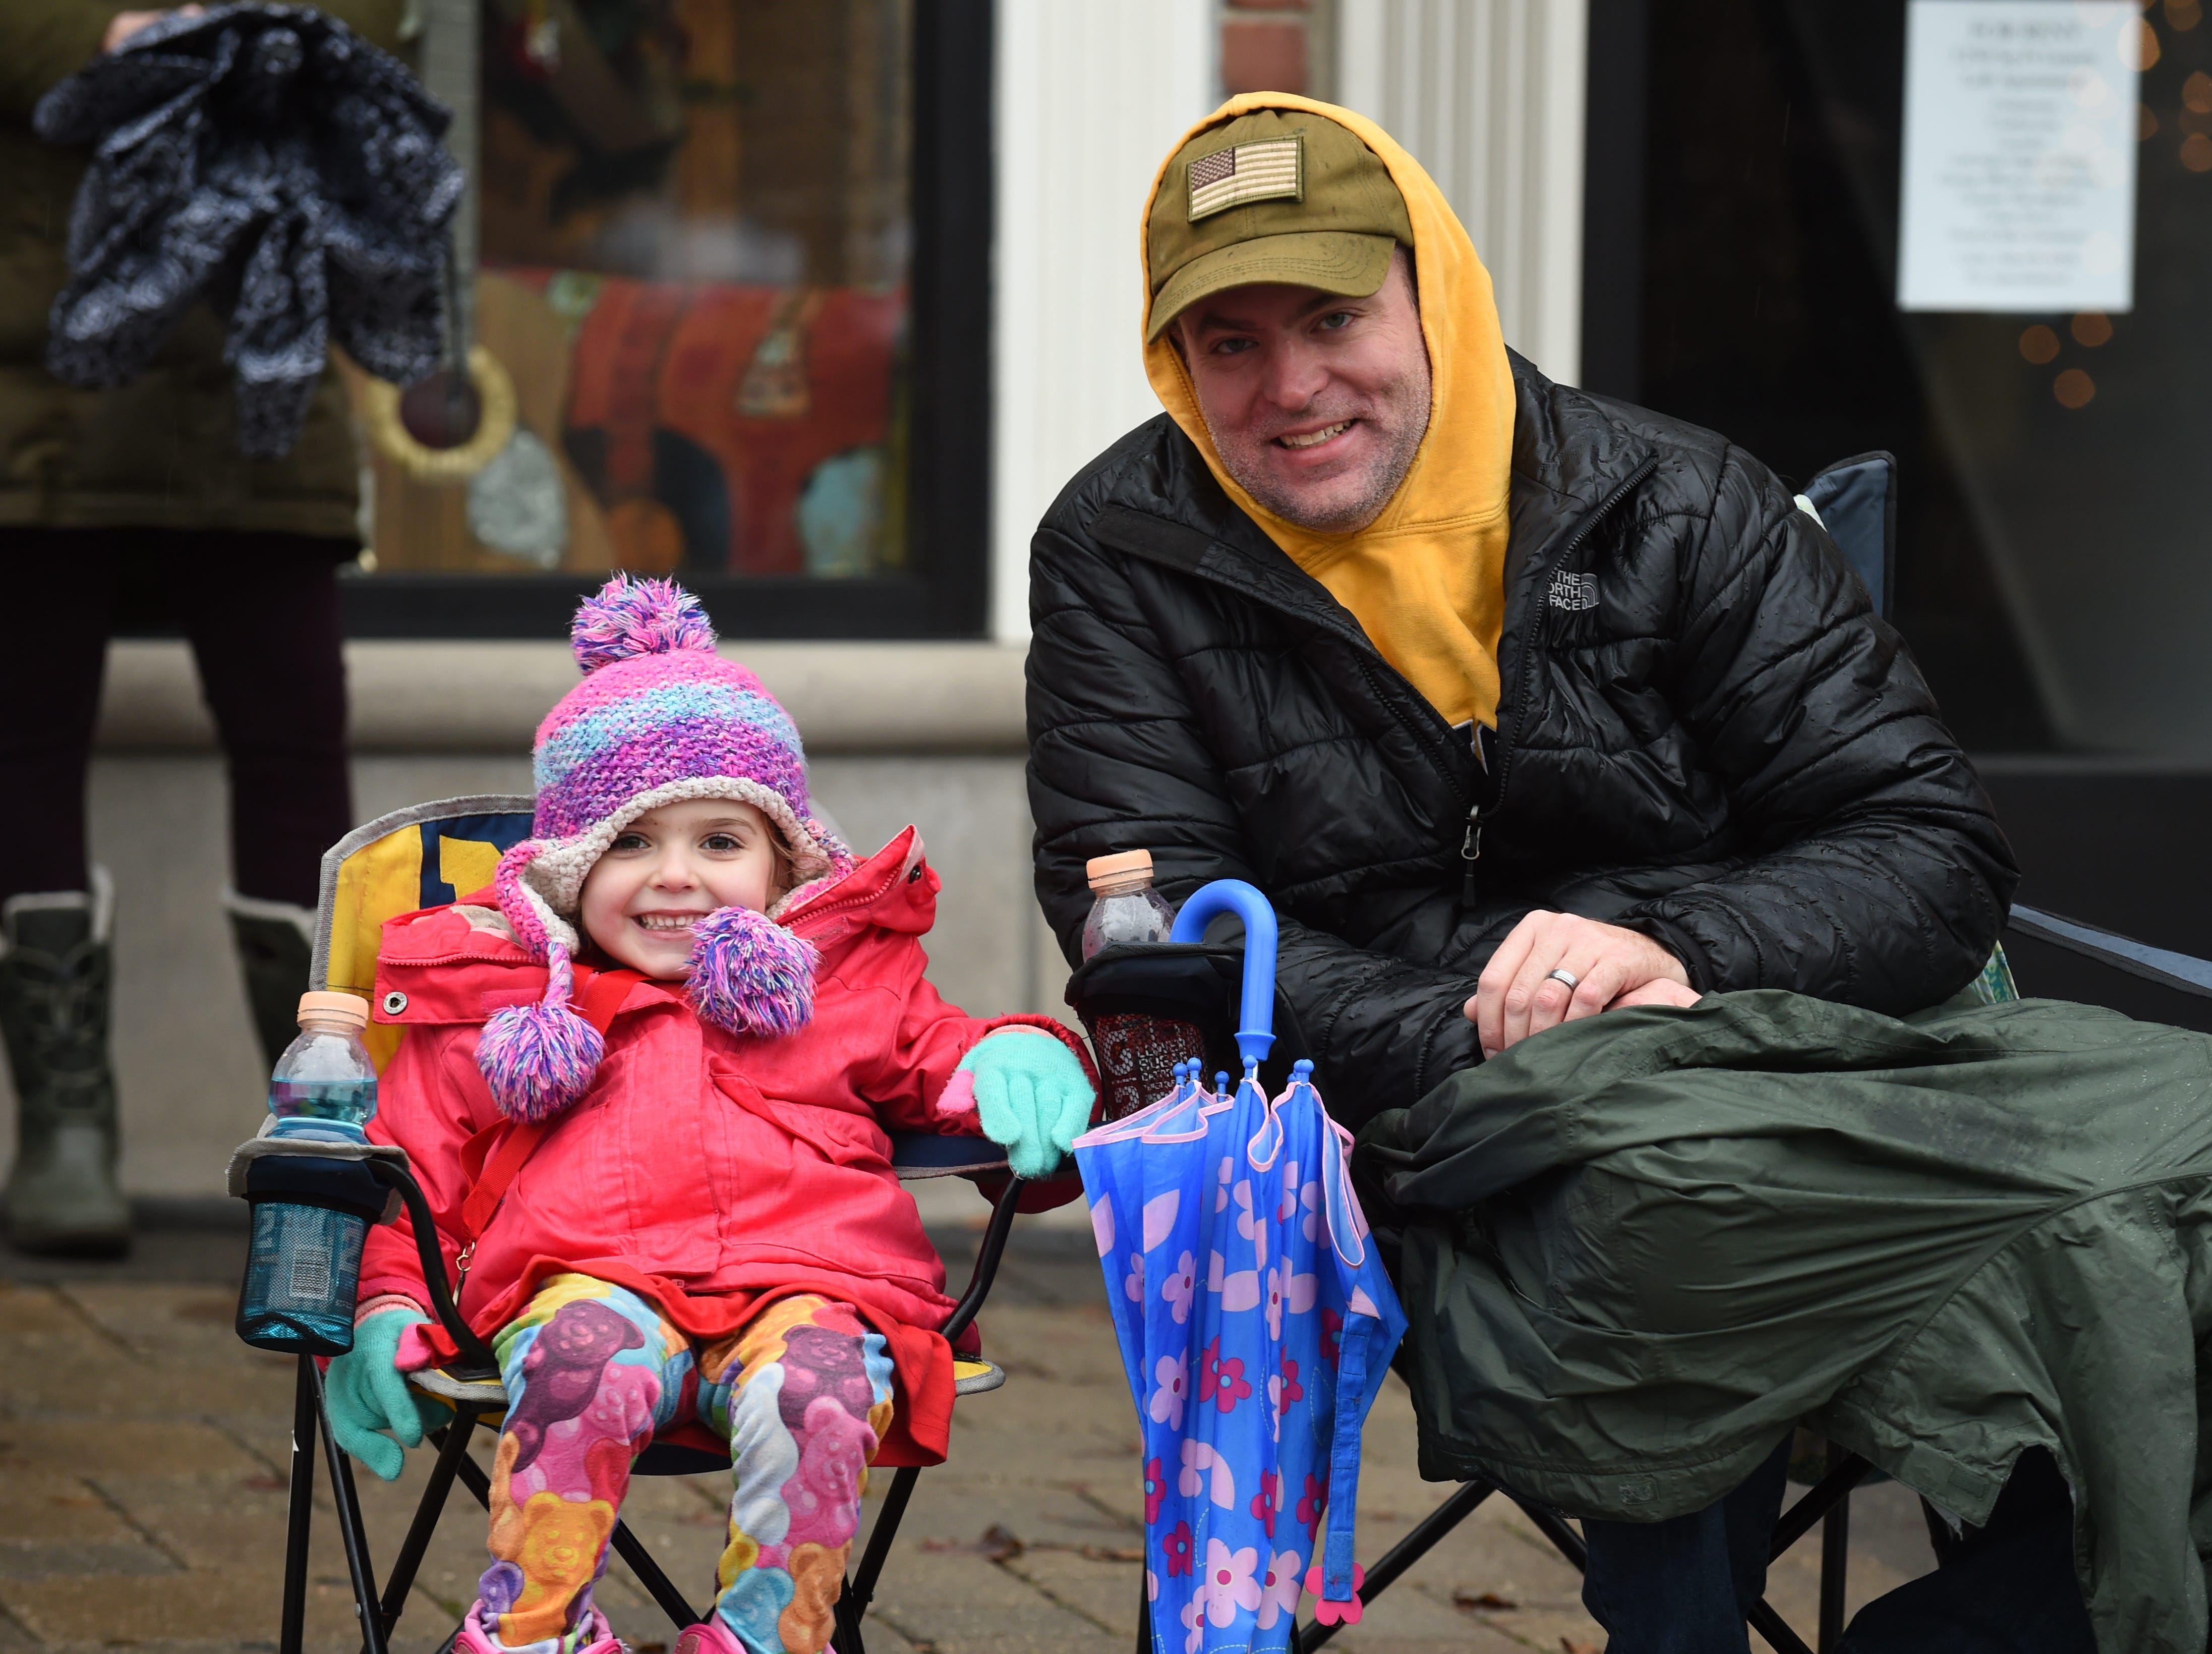 Adeline and Jay Laws of Milford wait for the annual parade in Milford Saturday.